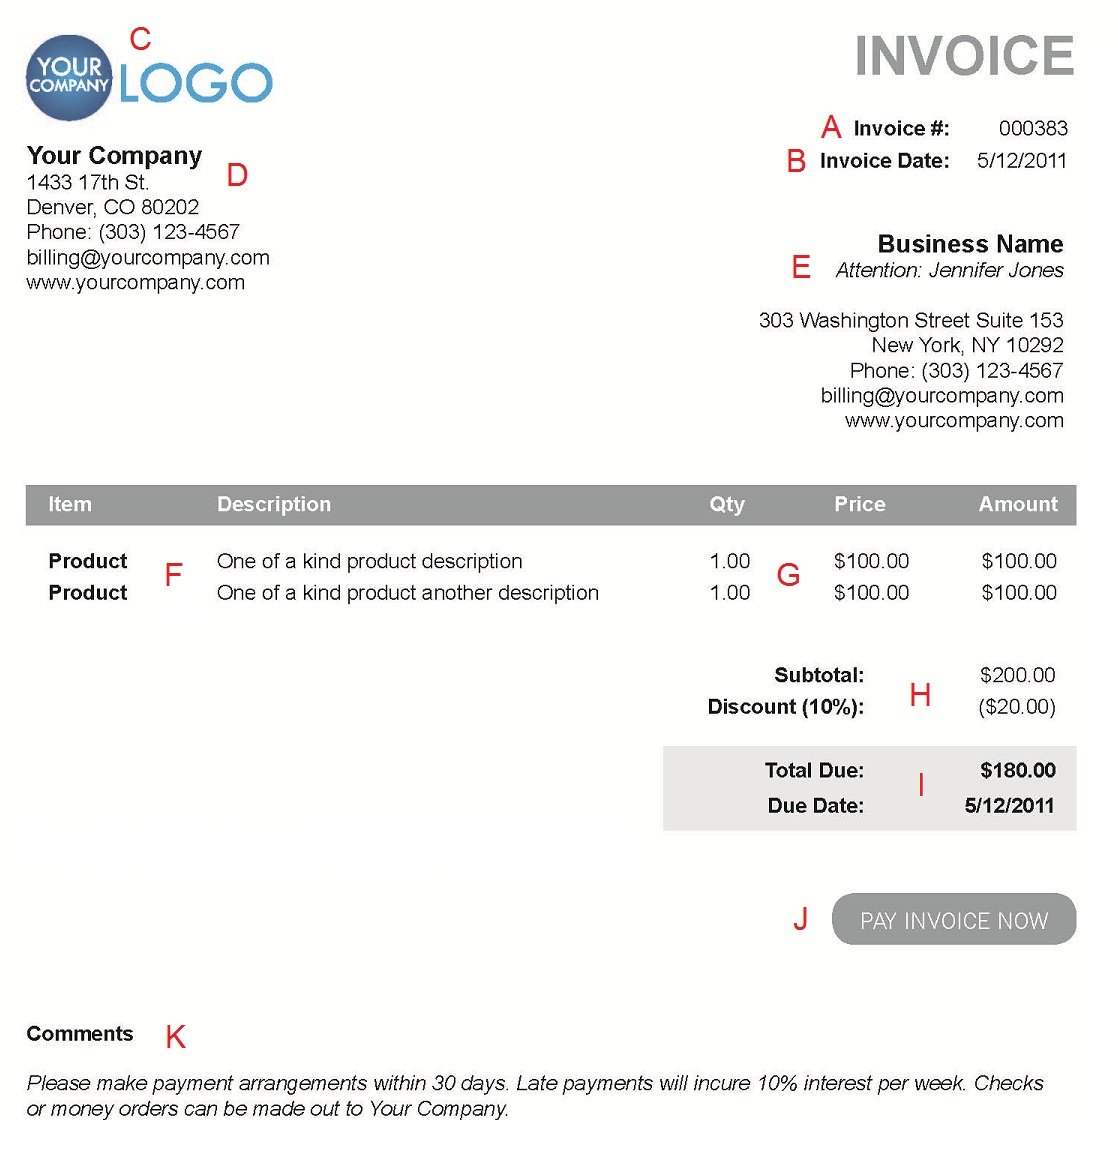 Coolmathgamesus  Sweet The  Different Sections Of An Electronic Payment Invoice With Extraordinary A  With Amazing Apcoa Receipts Also Tneb E Receipt In Addition Meaning Receipt And Receipt For Sale Of Used Car As Well As How To Make Fake Receipts Online Additionally Formal Receipt Template From Paysimplecom With Coolmathgamesus  Extraordinary The  Different Sections Of An Electronic Payment Invoice With Amazing A  And Sweet Apcoa Receipts Also Tneb E Receipt In Addition Meaning Receipt From Paysimplecom